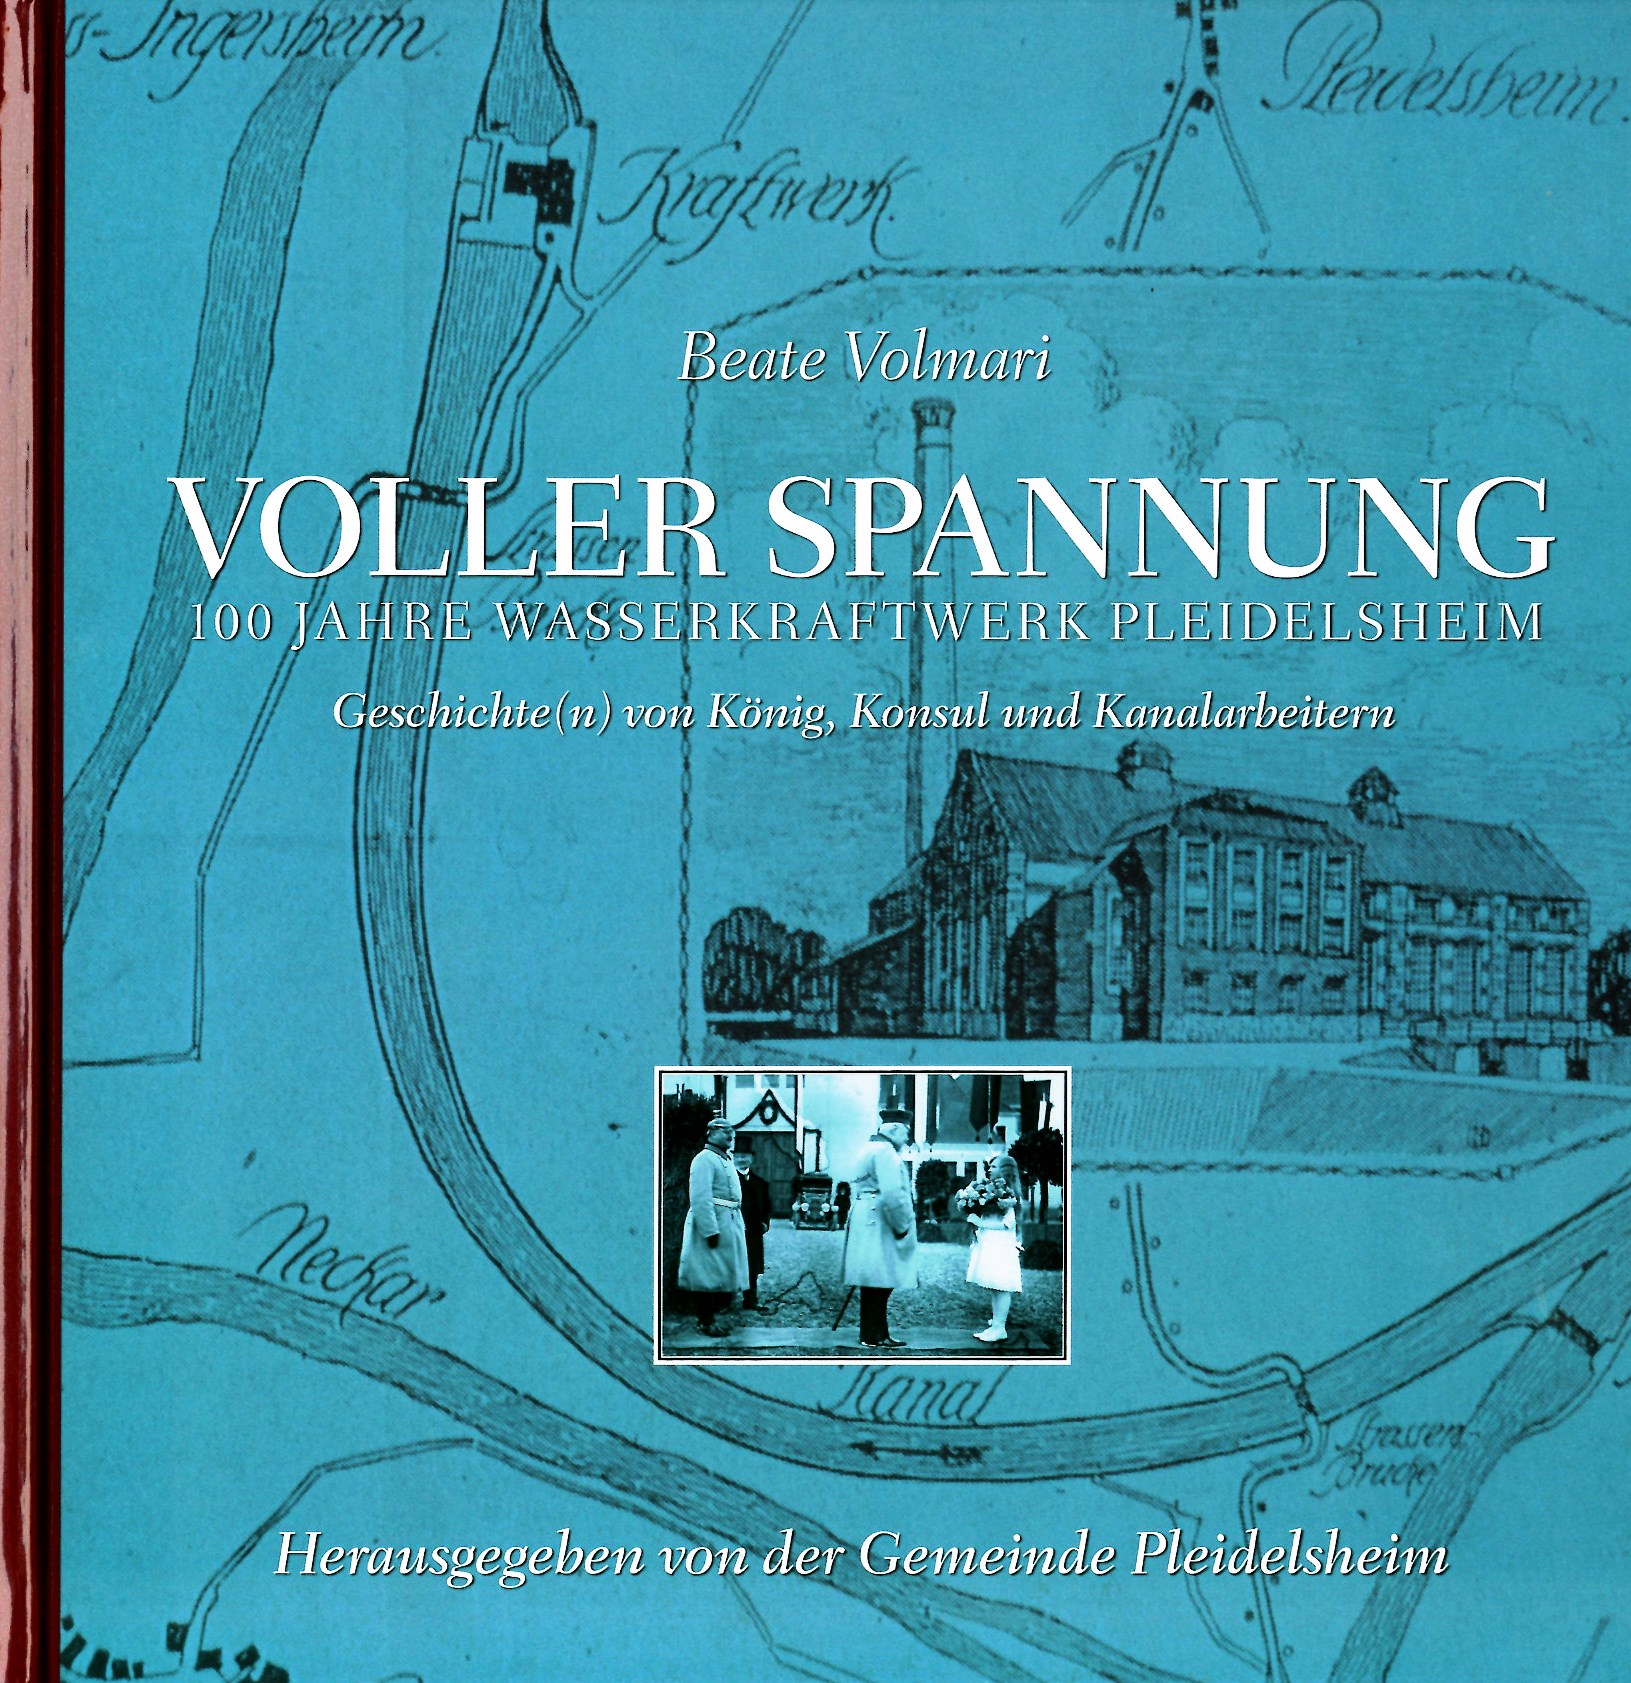 Voller Spannung